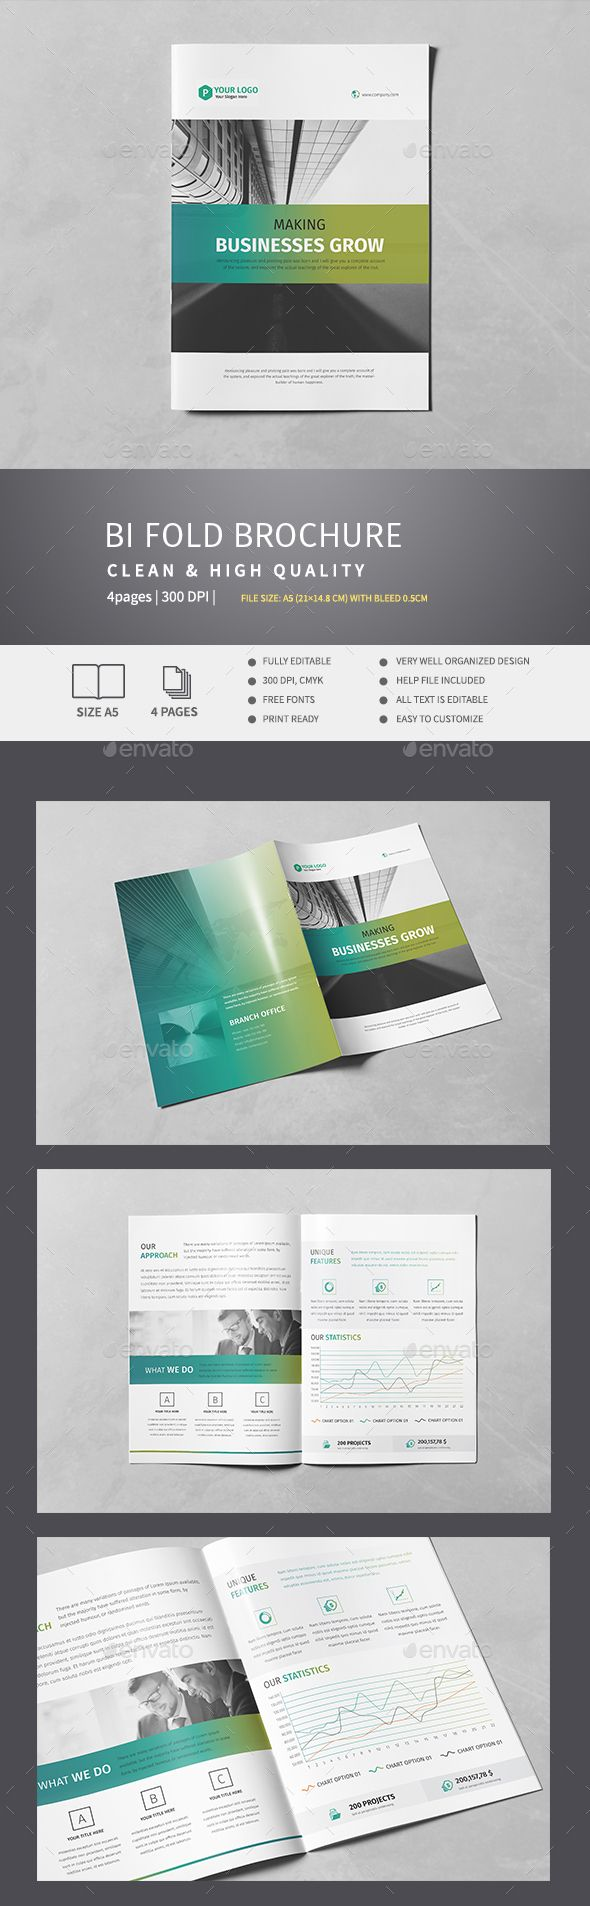 Corporate Bi Fold Brochure V2Features File Size A5 With Bleed 03 Mm Fully Editable300 Dpi CMYK Easy To Customize Note Phot